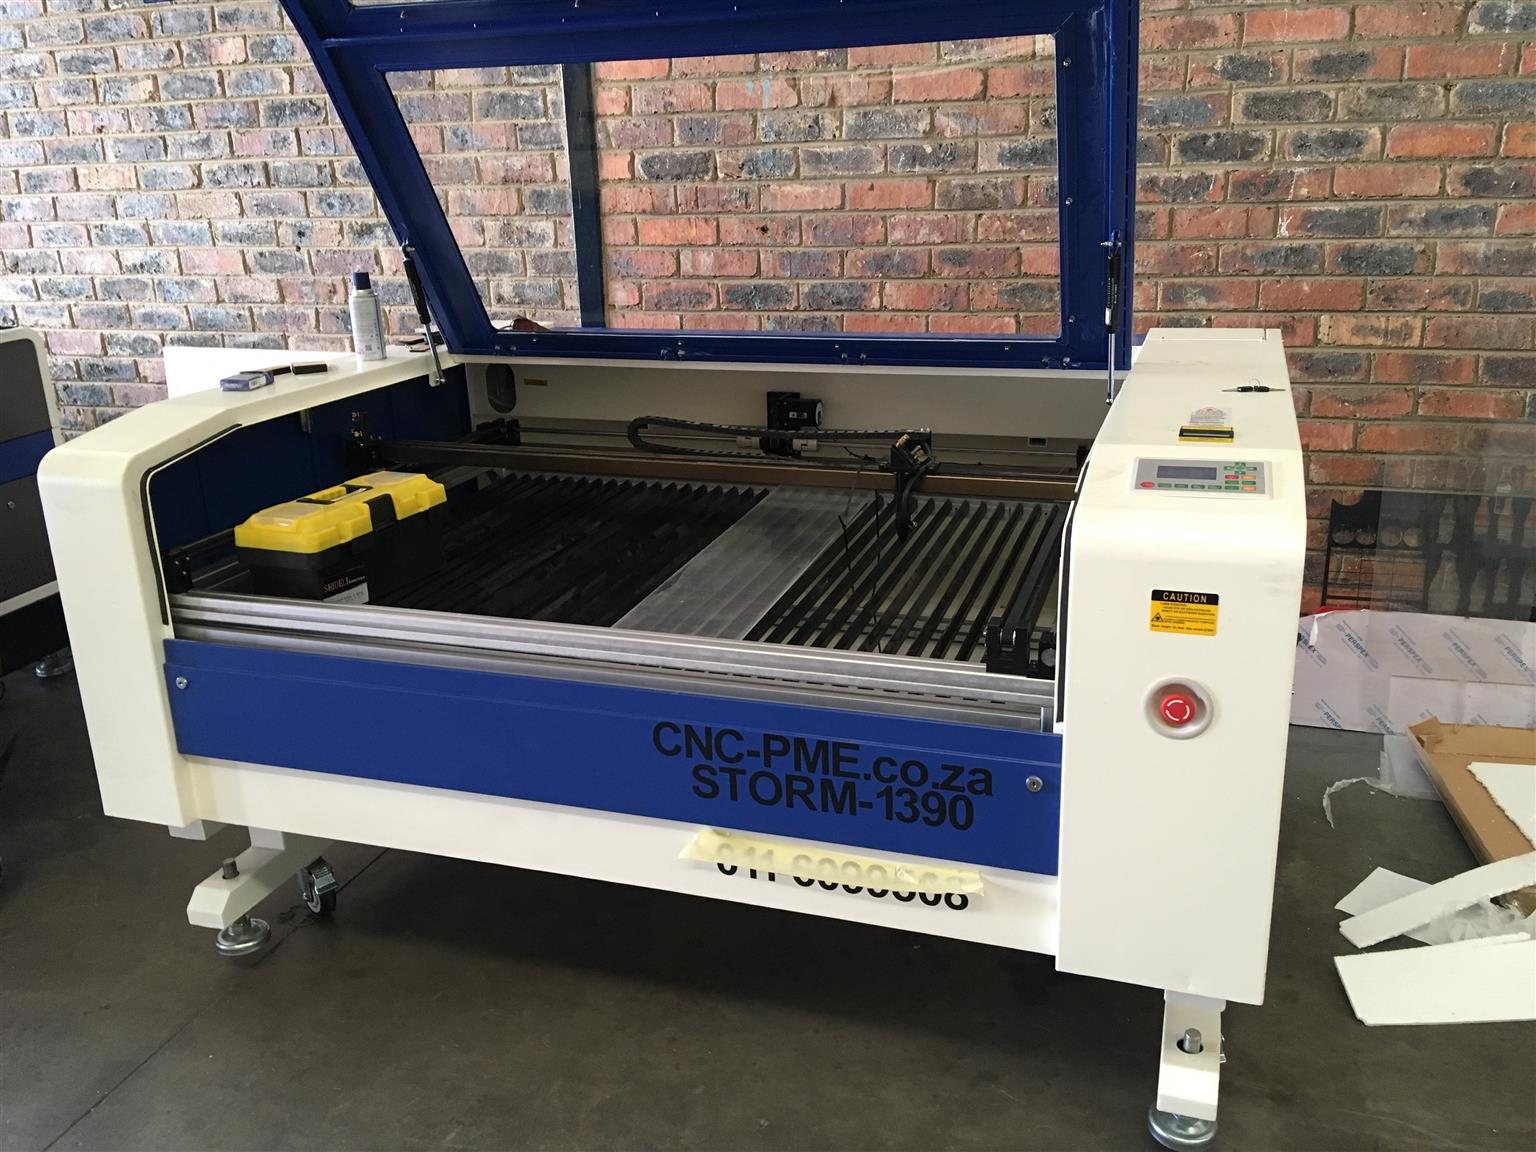 kl storm laser cutting /engraving mach flat bed 1390x80 w